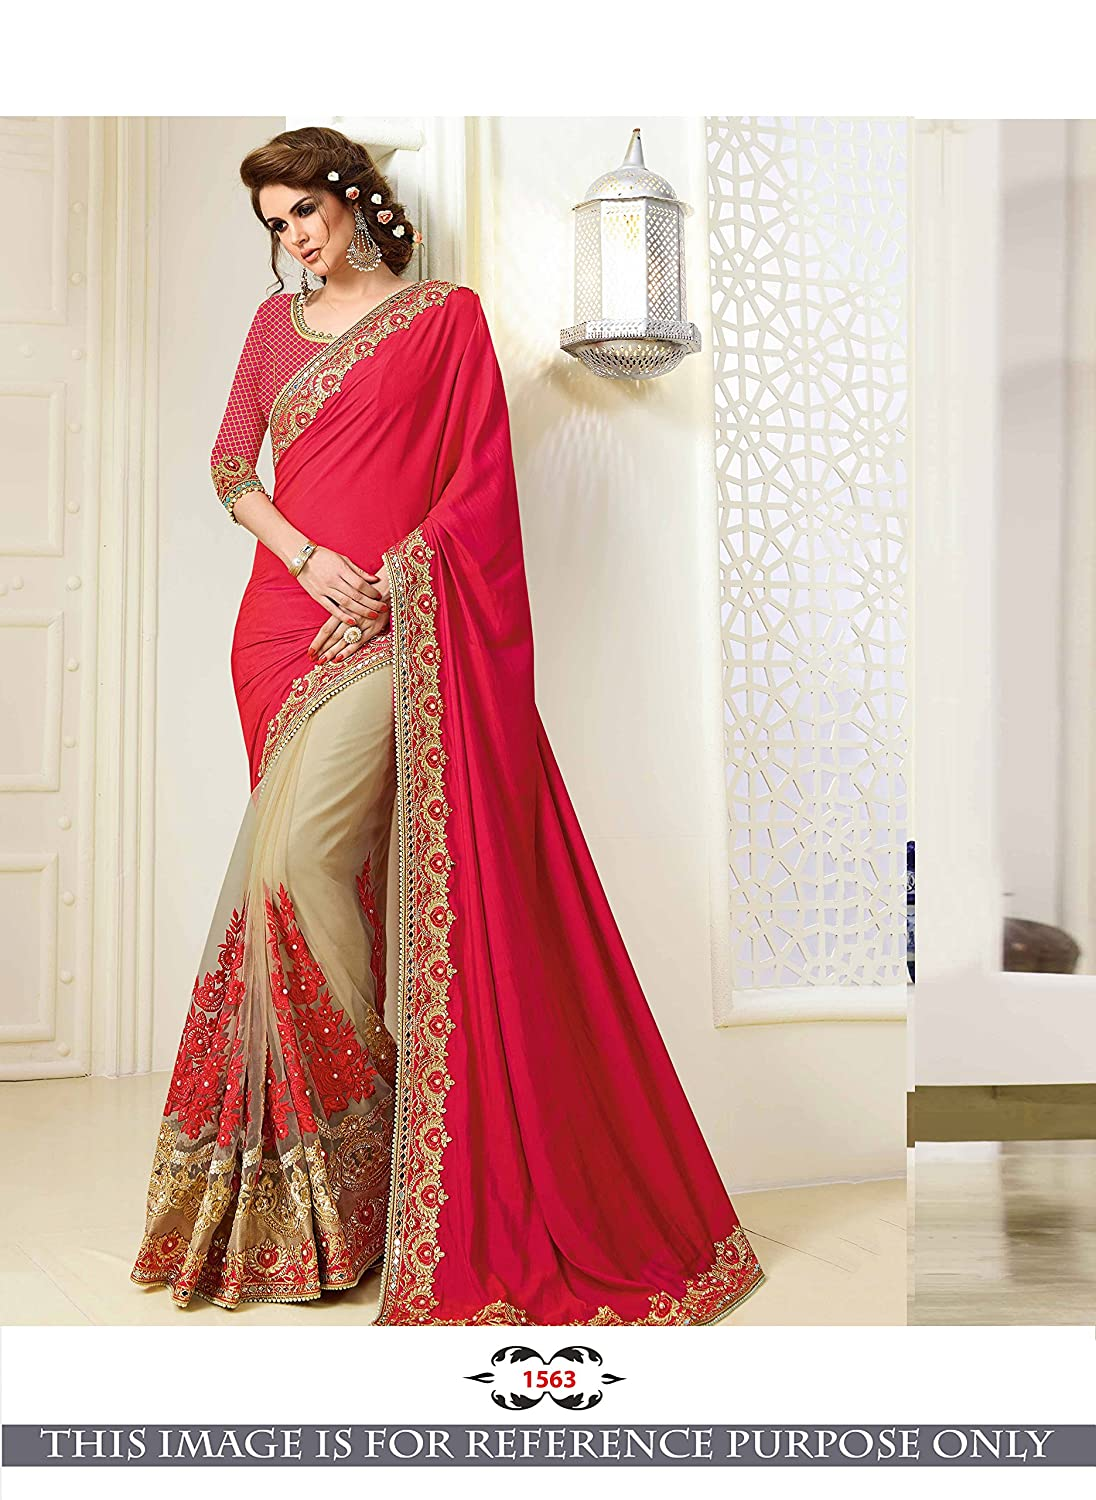 Women's Clothing Other Women's Clothing Traditional Georgette Saree Pakistani New Collection Clothing Sari Blouse Ethnic